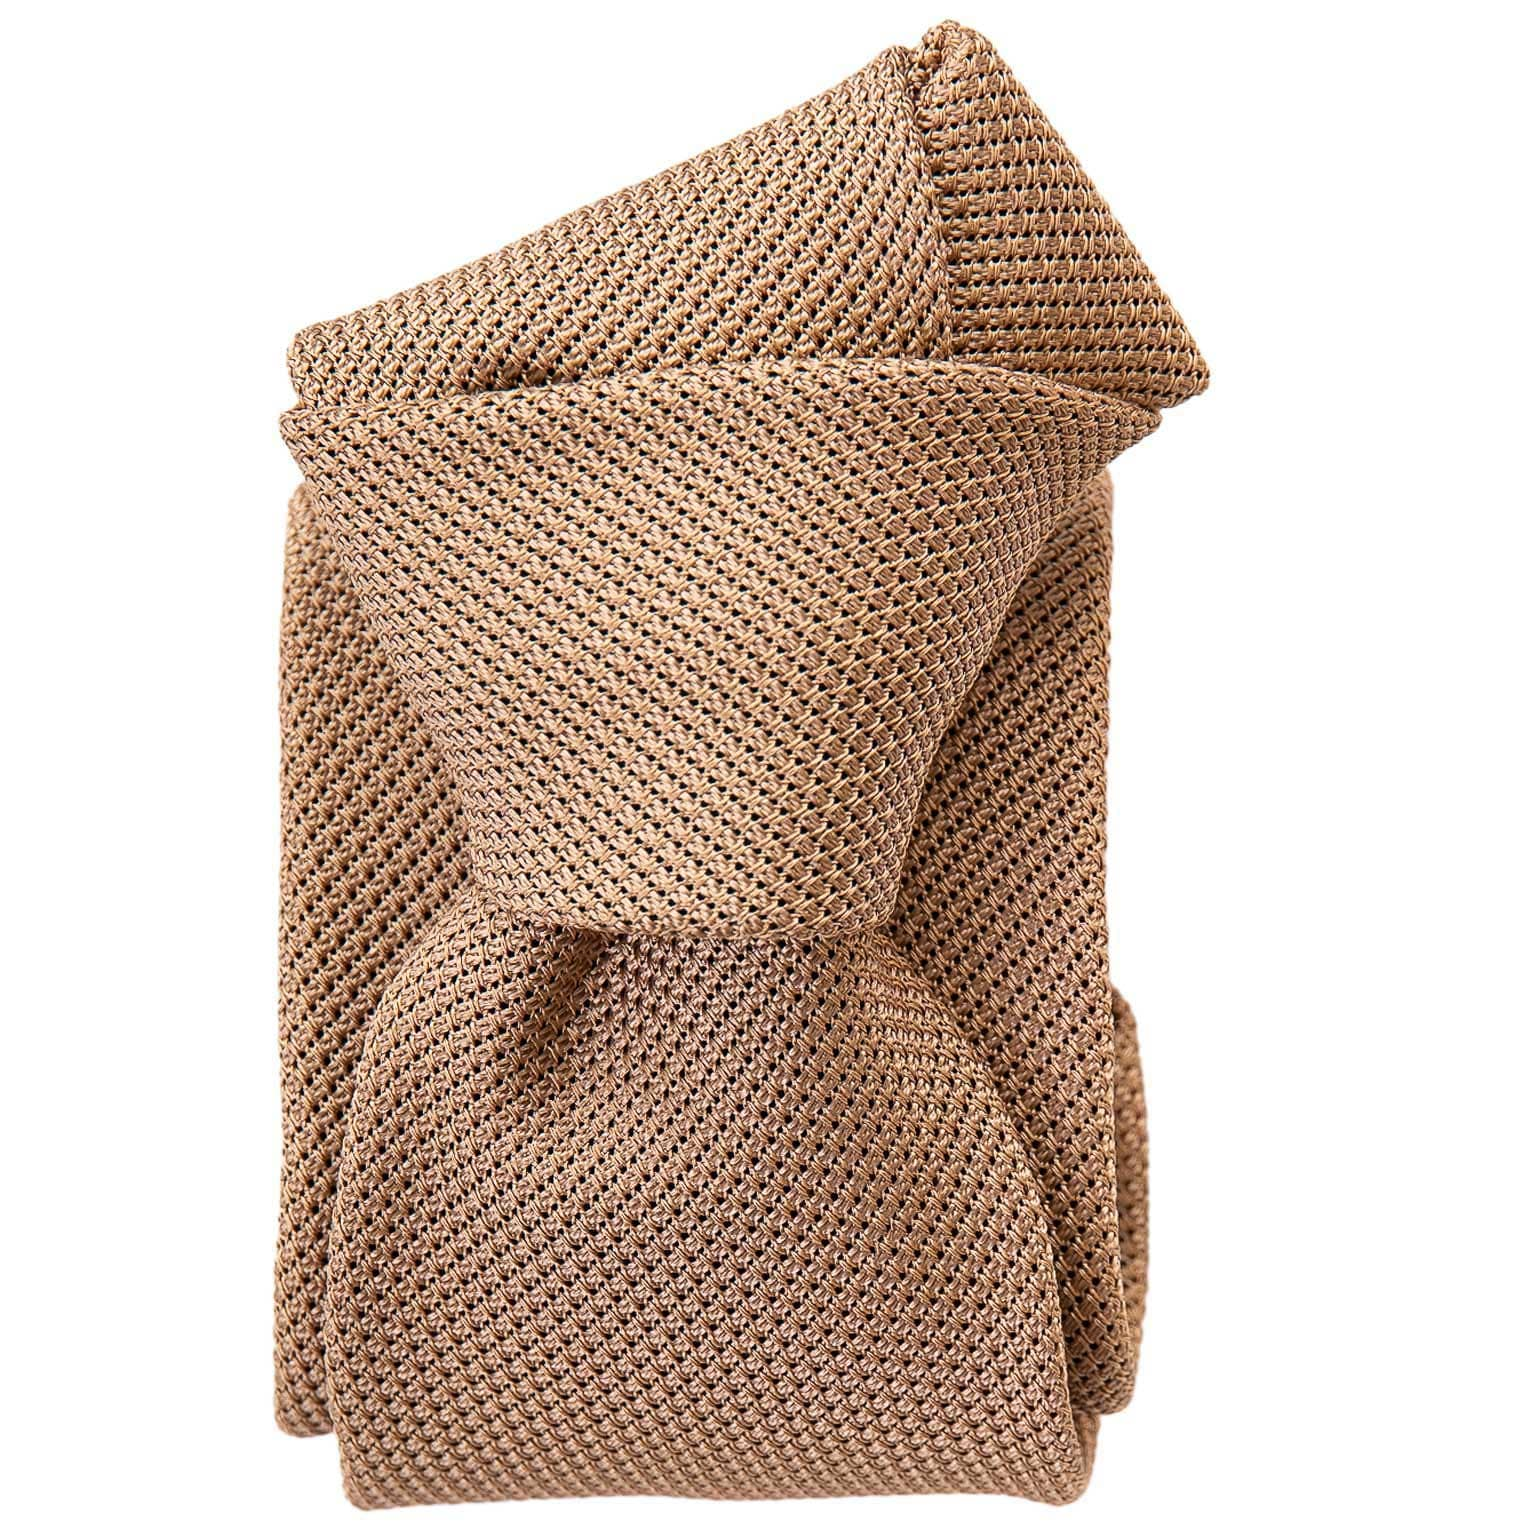 Silk Grenadine Tie - Camel - 100% Made in Italy